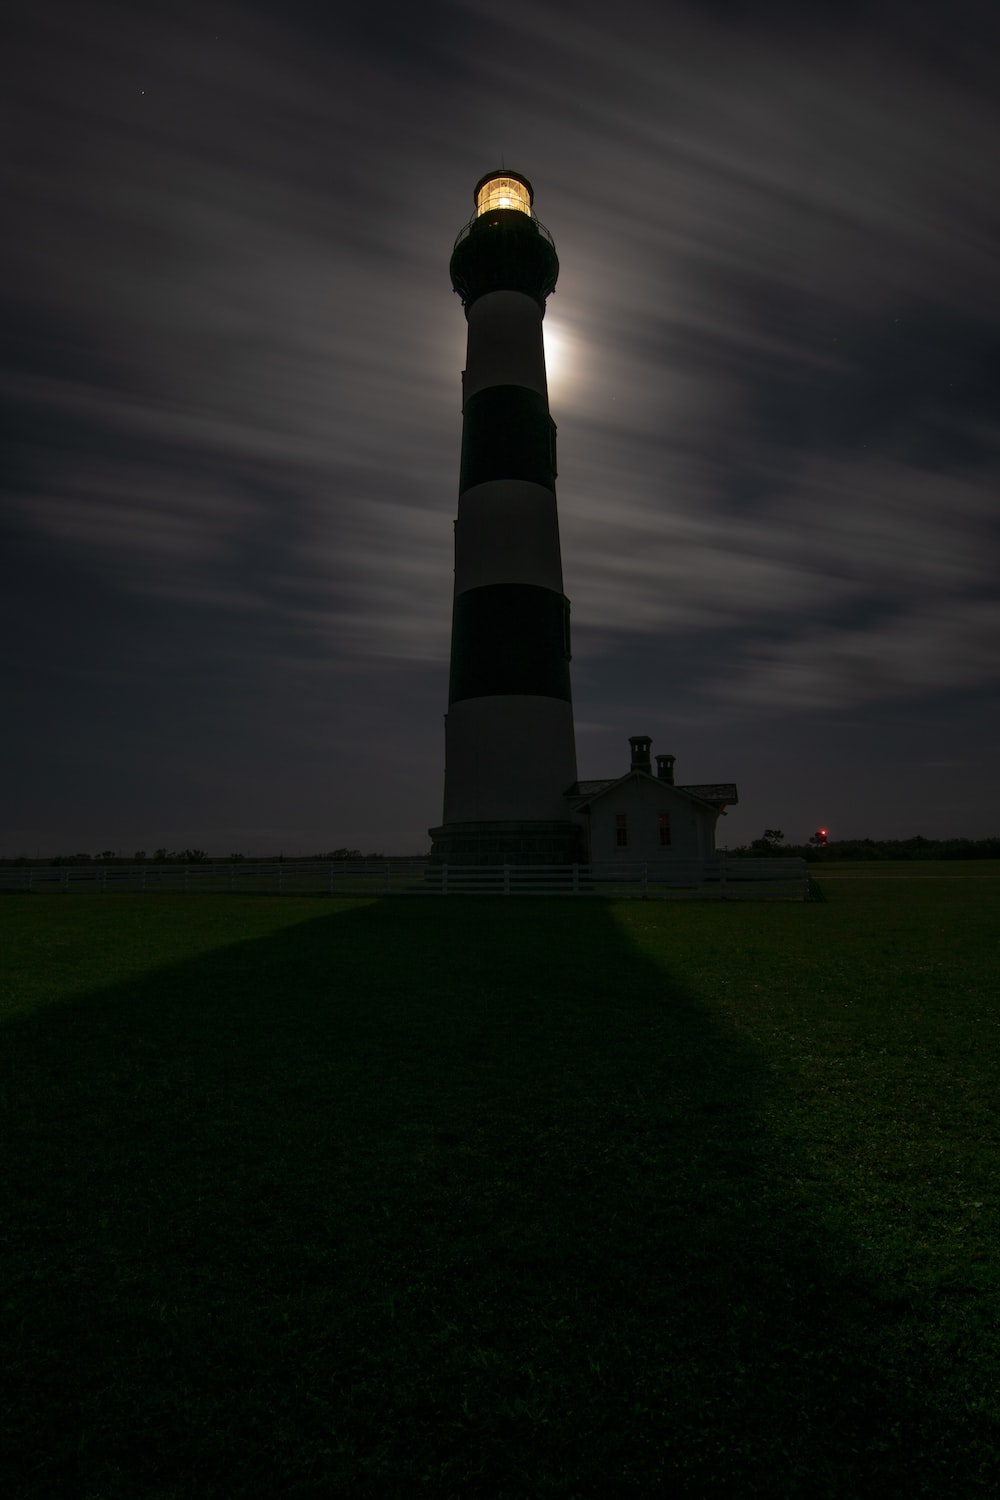 lighthouse under cloudy sky at night